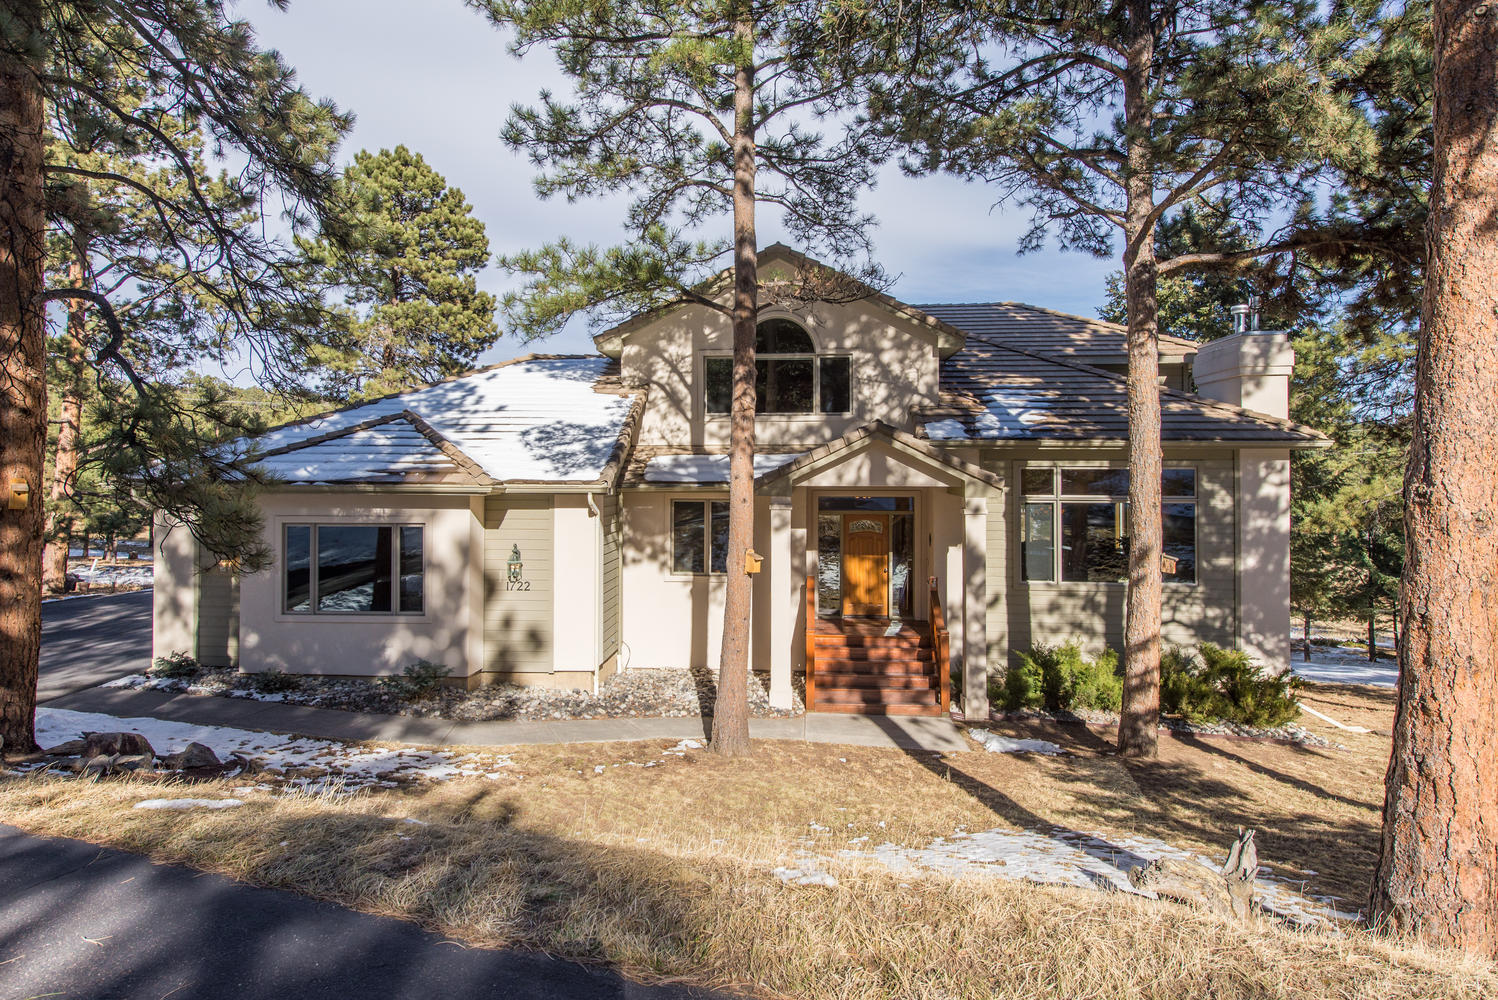 Single Family Home for Sale at Experience Tranquility with this Charming Cul-de-Sac Home 1722 Silver Creek Lane Evergreen, Colorado, 80439 United States